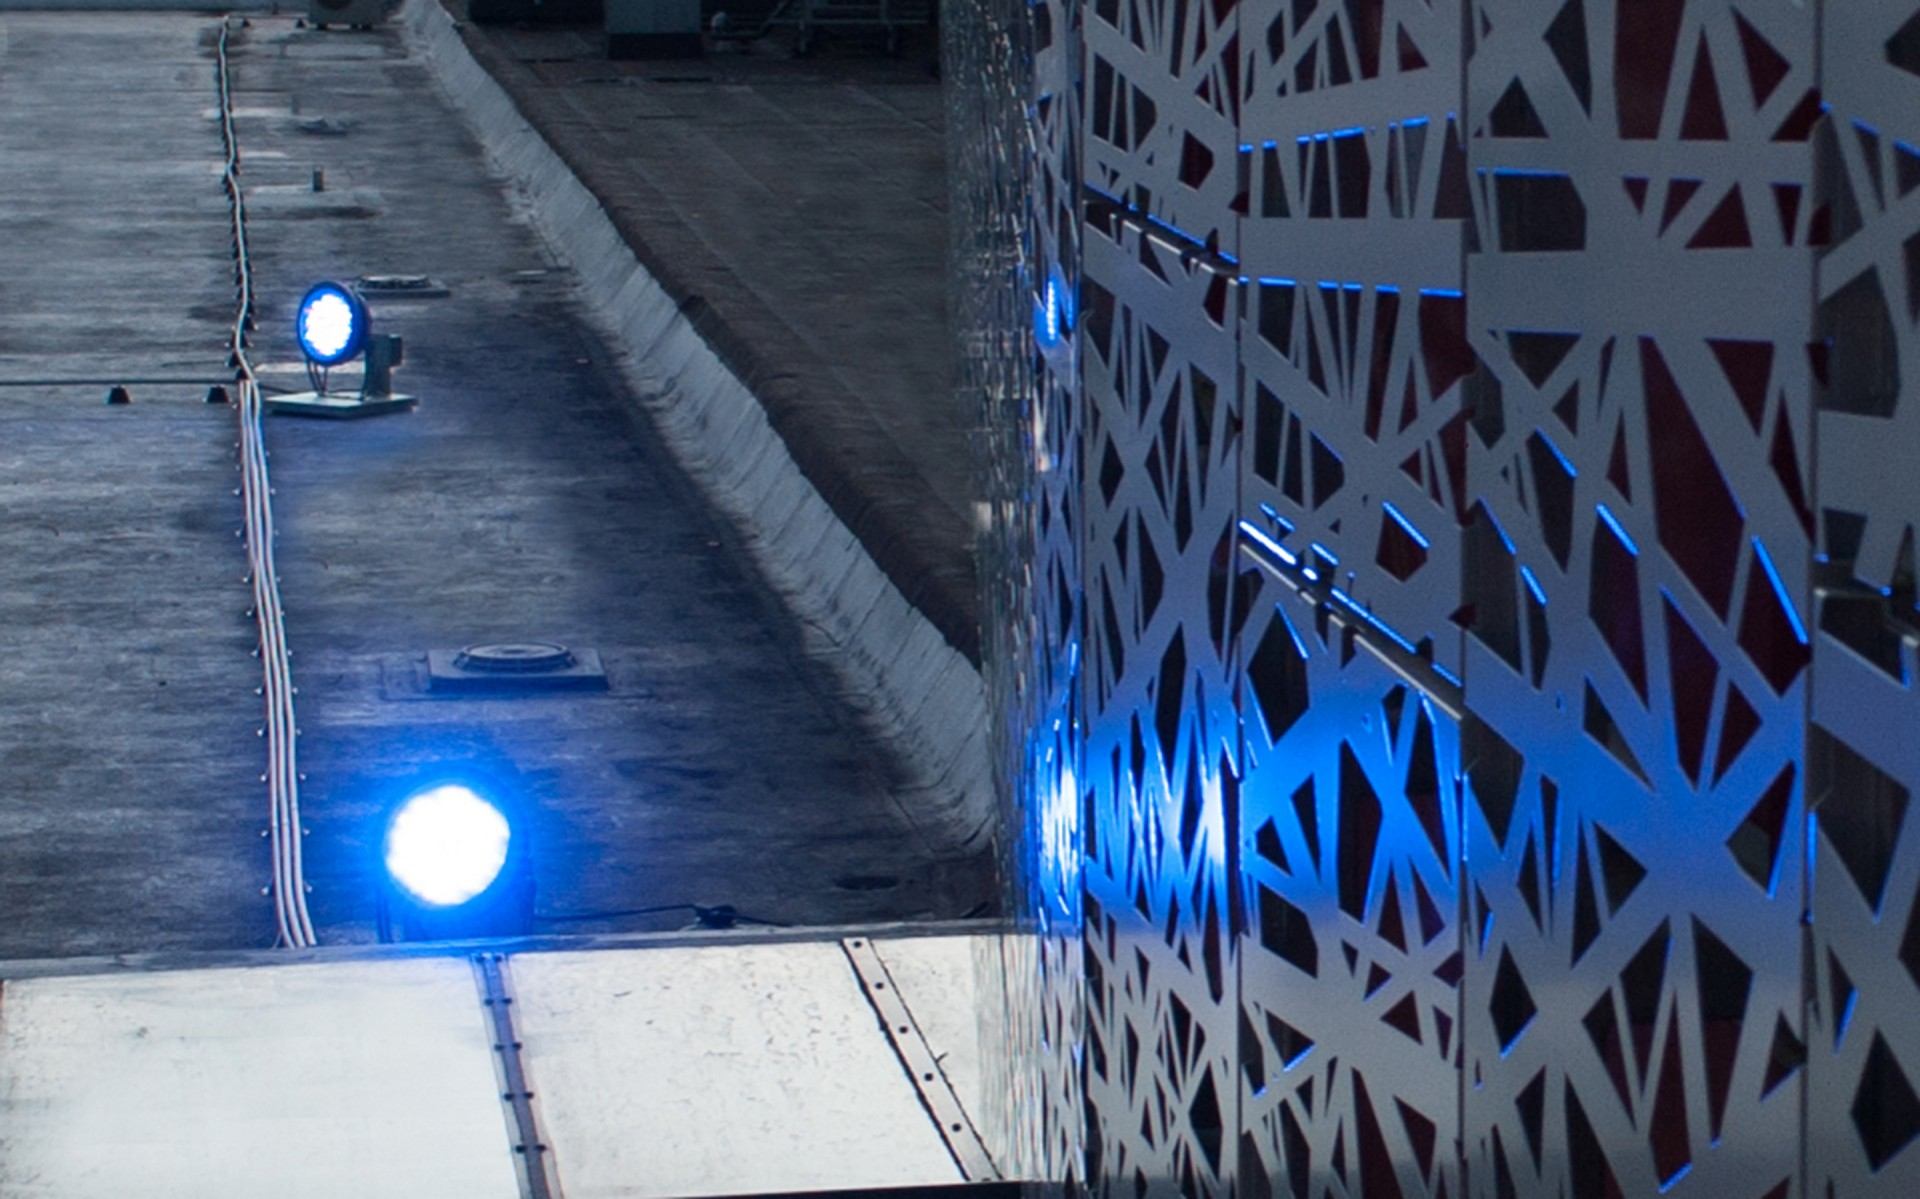 The luminaires were installed on the roofs of the surrounding buildings.